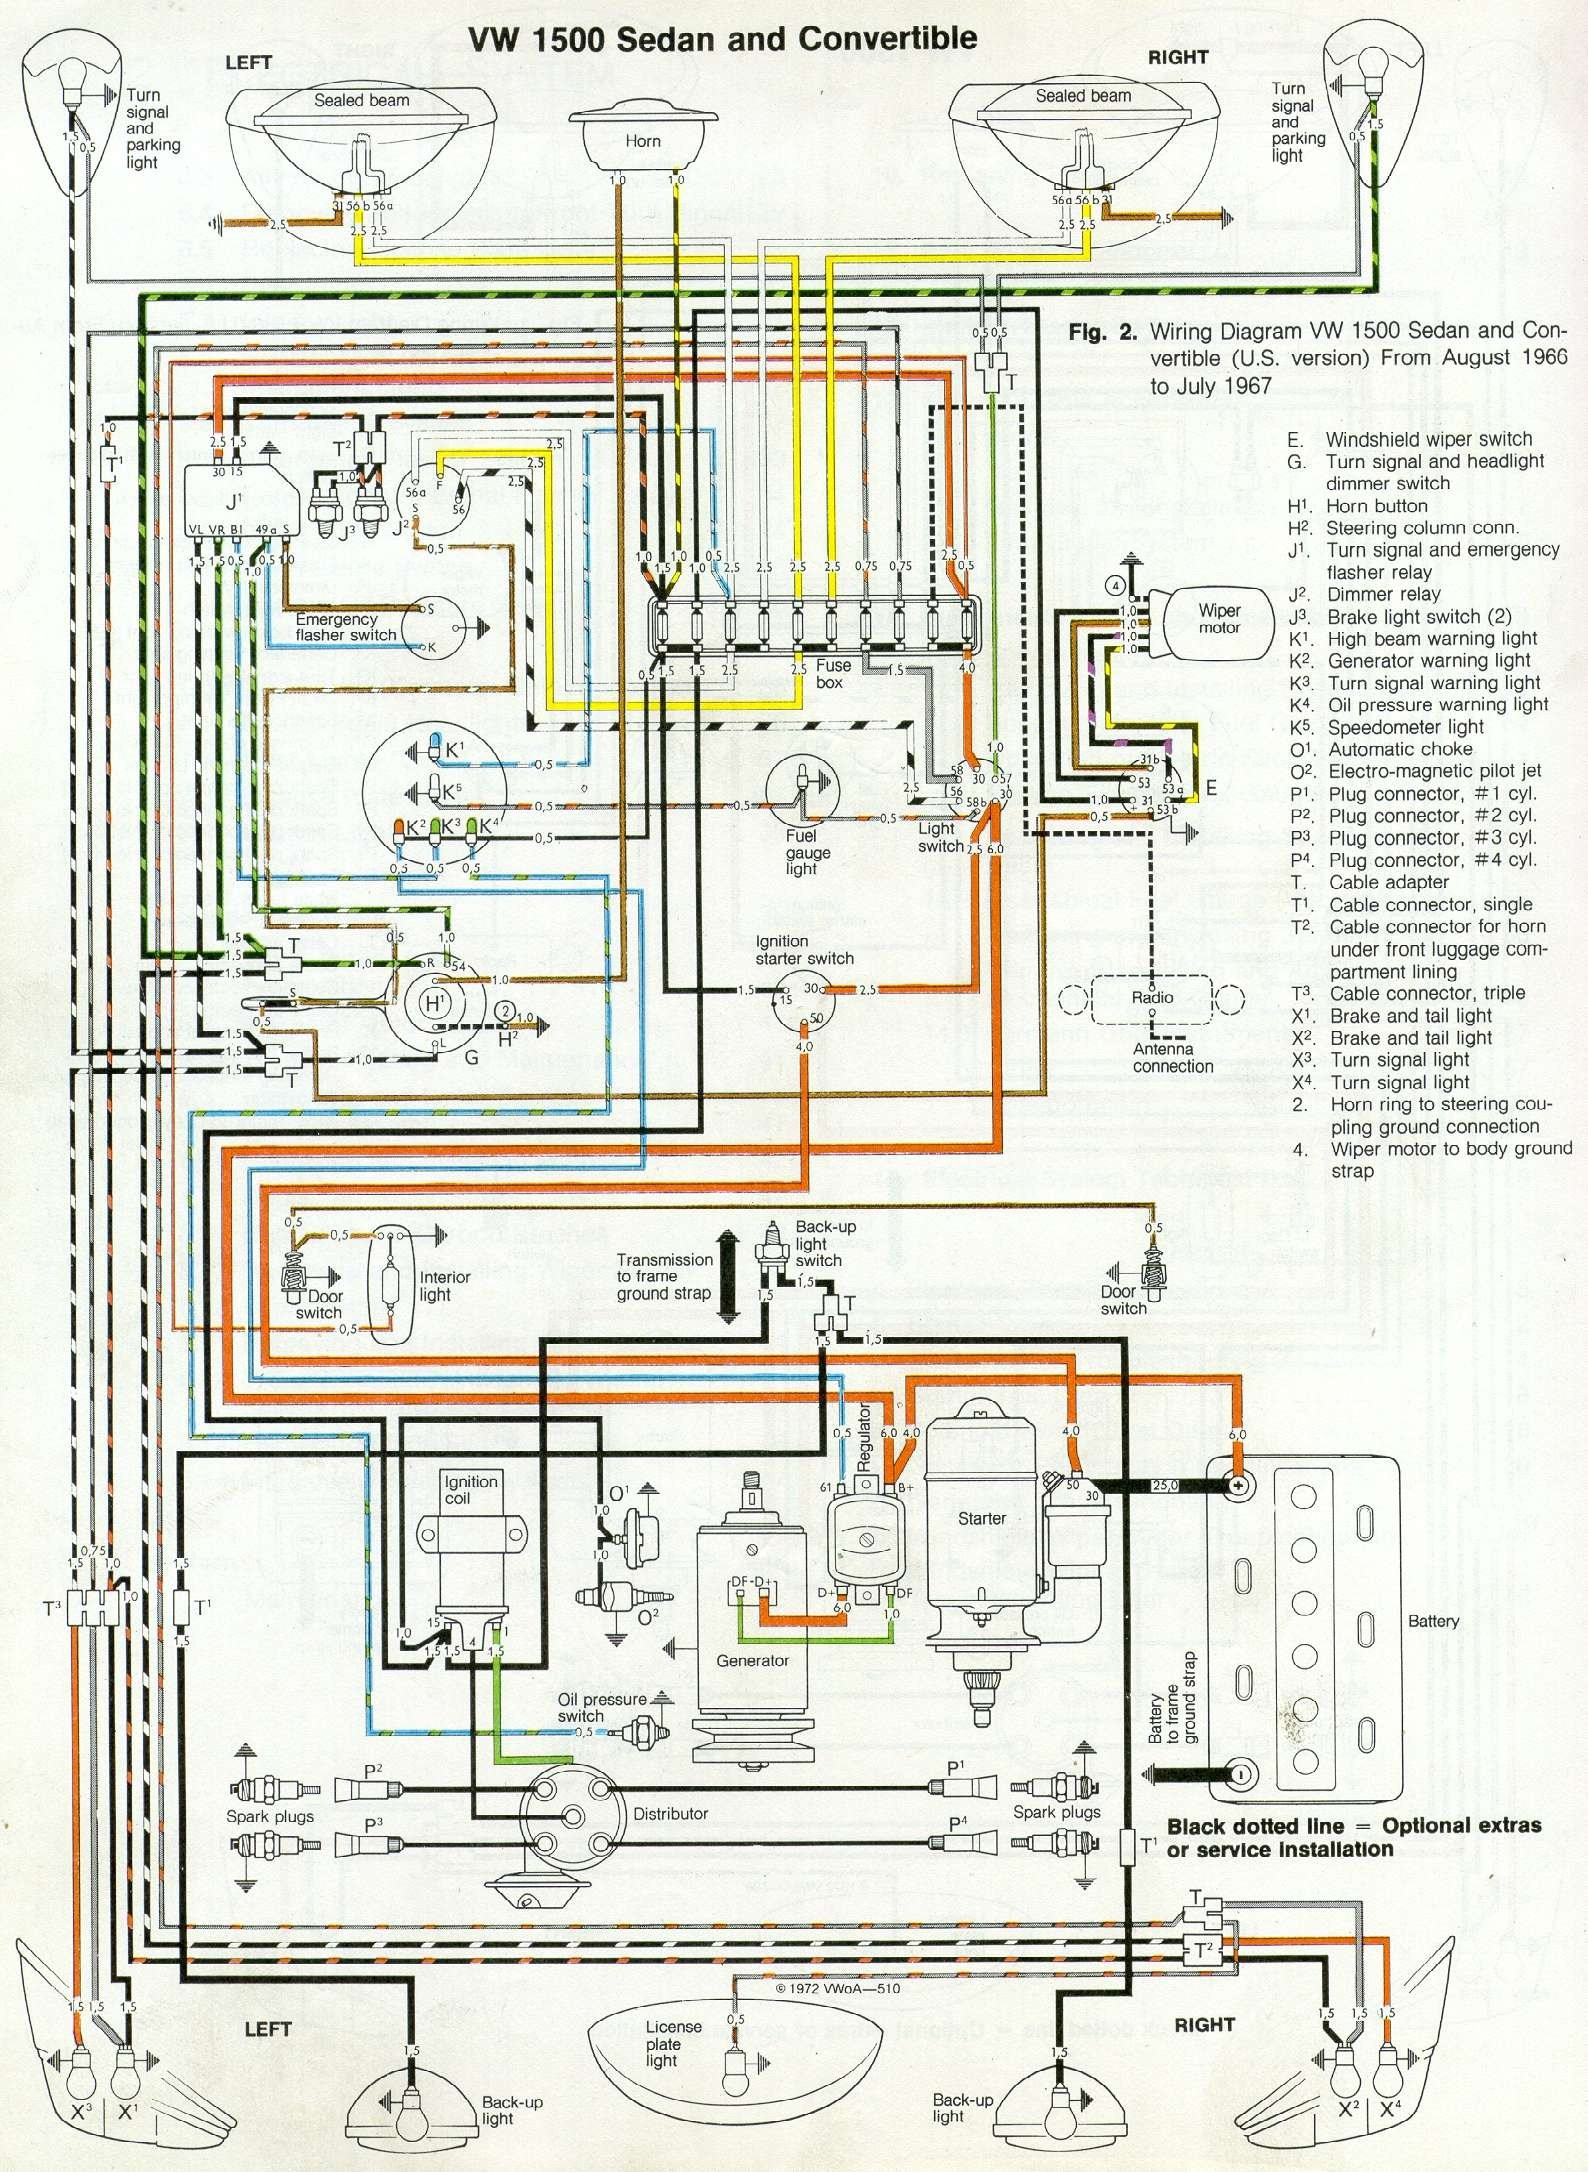 1967 volkswagen wiring diagram smart wiring diagrams u2022 rh emgsolutions co